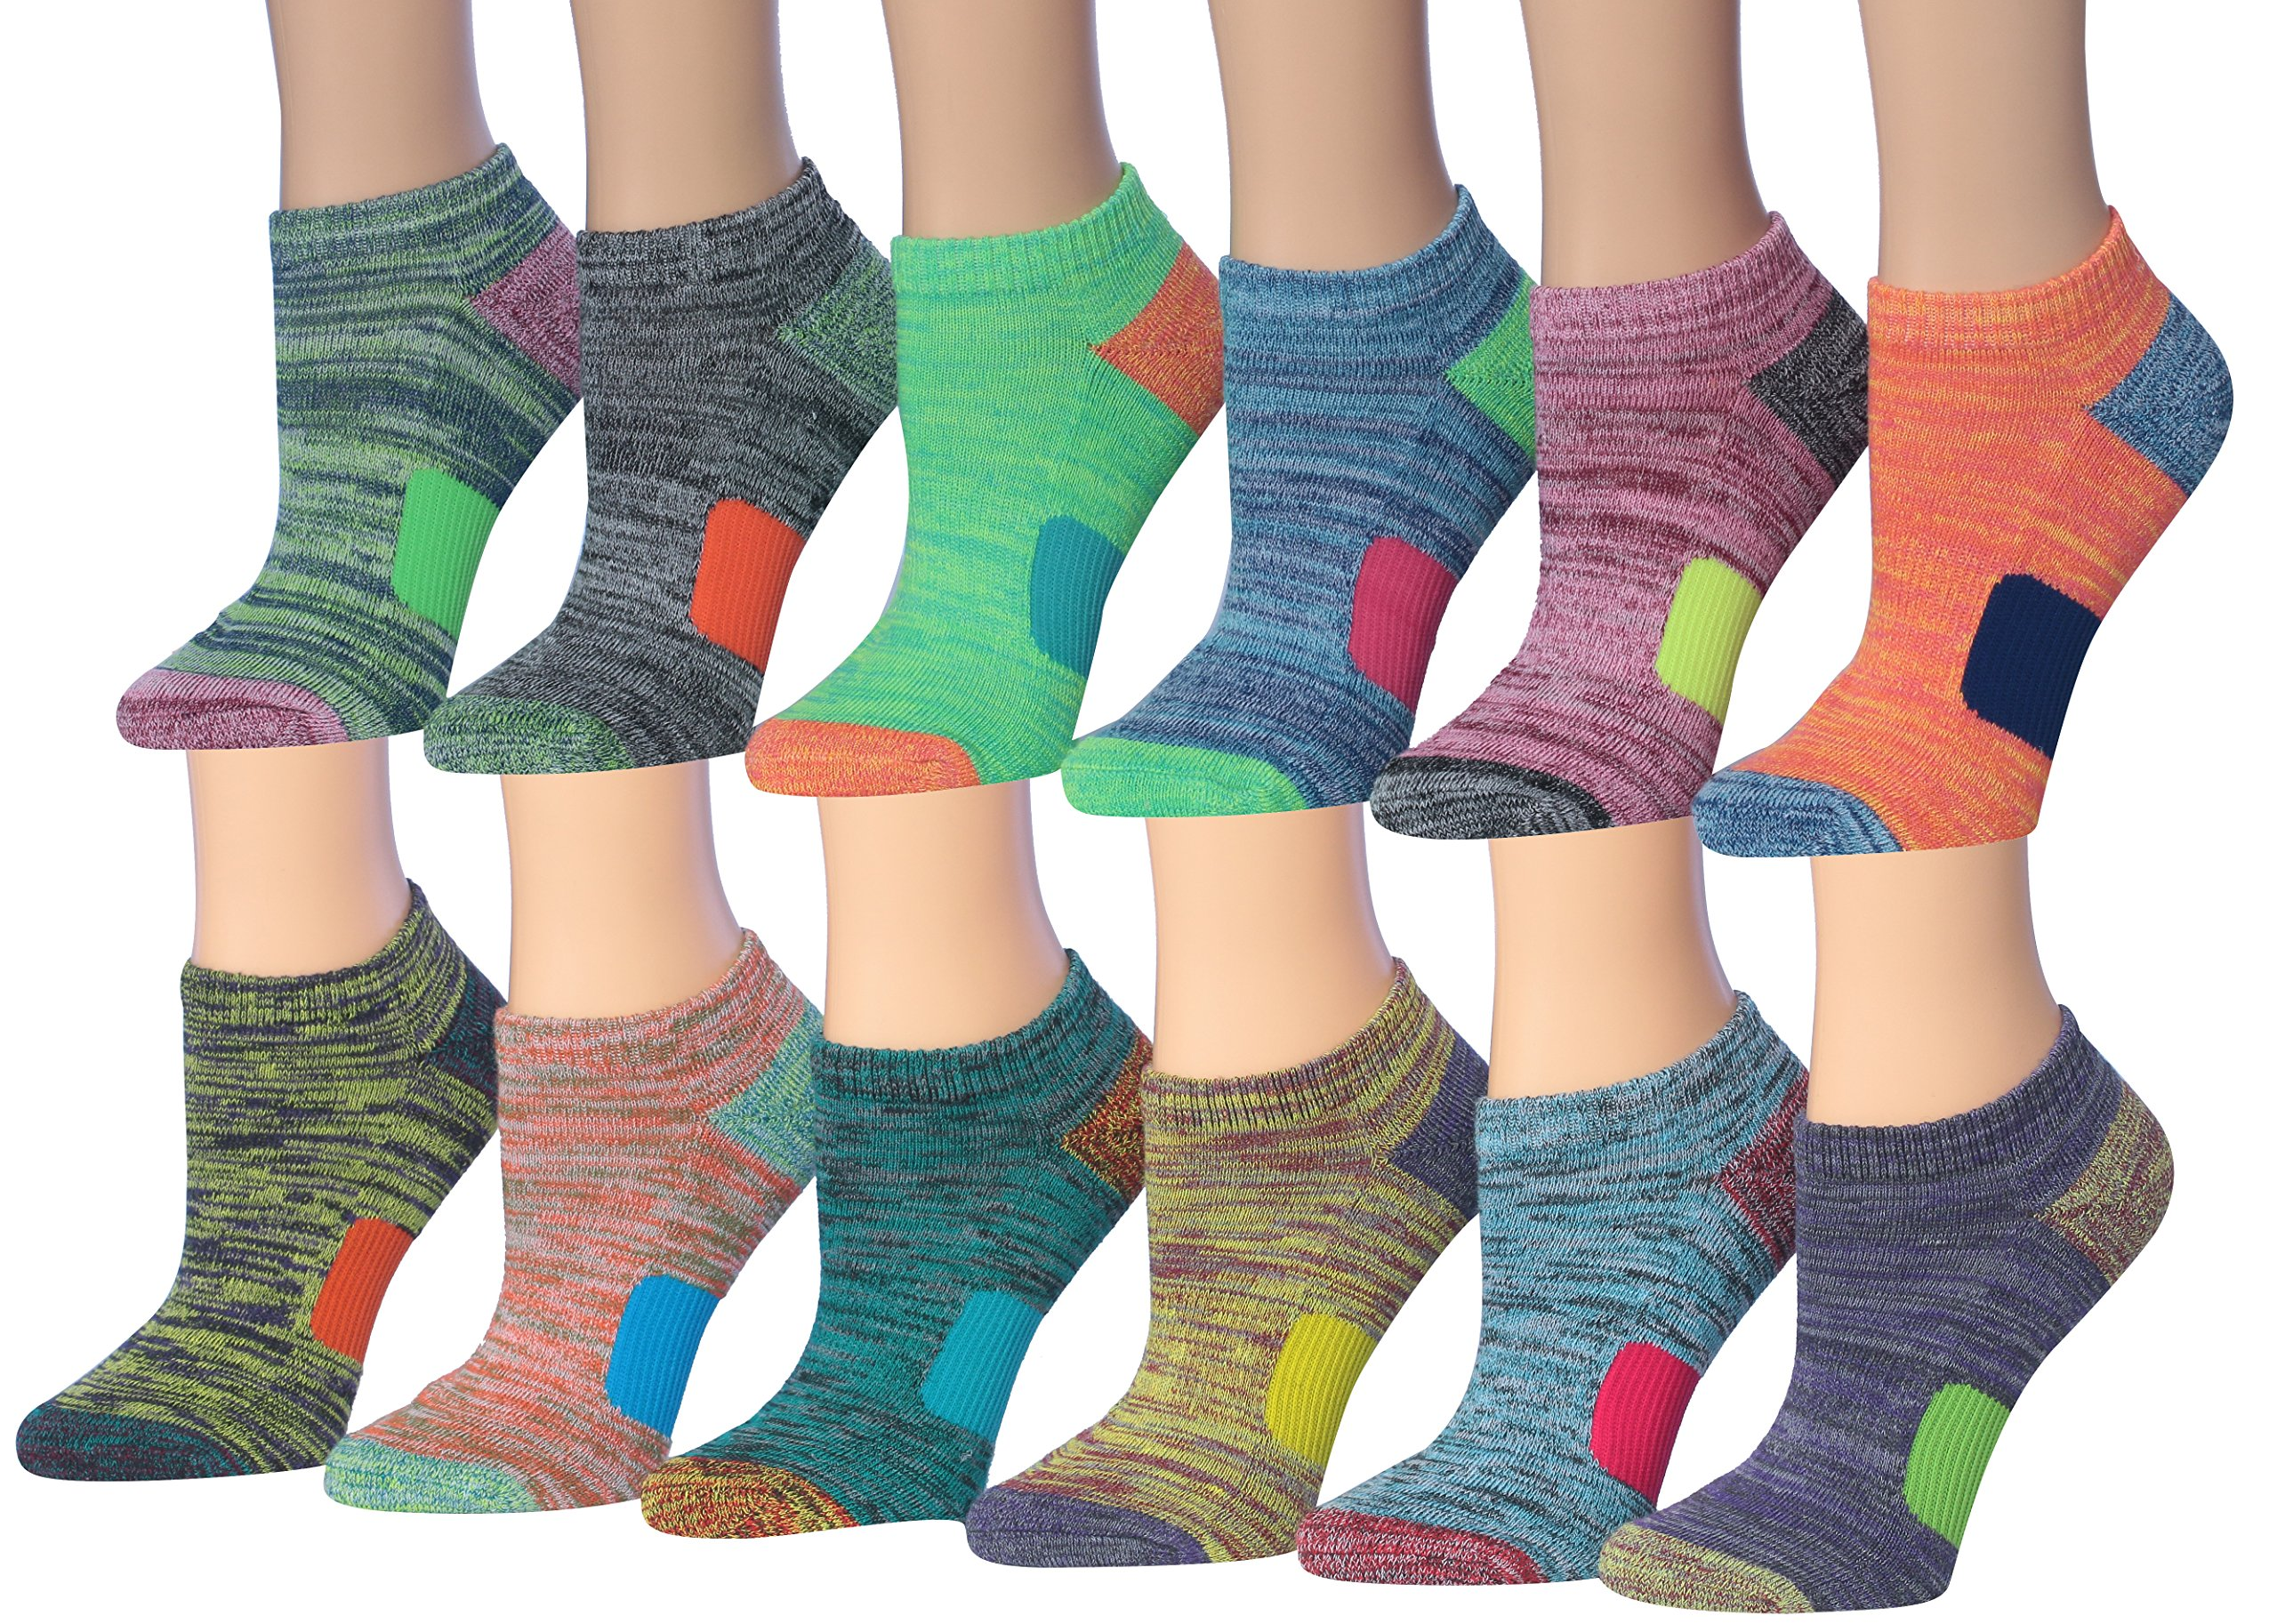 Tipi Toe Women's 12-Pairs Space Dye Athletic Performance Socks, Fits shoe size 6-9, SP33-12